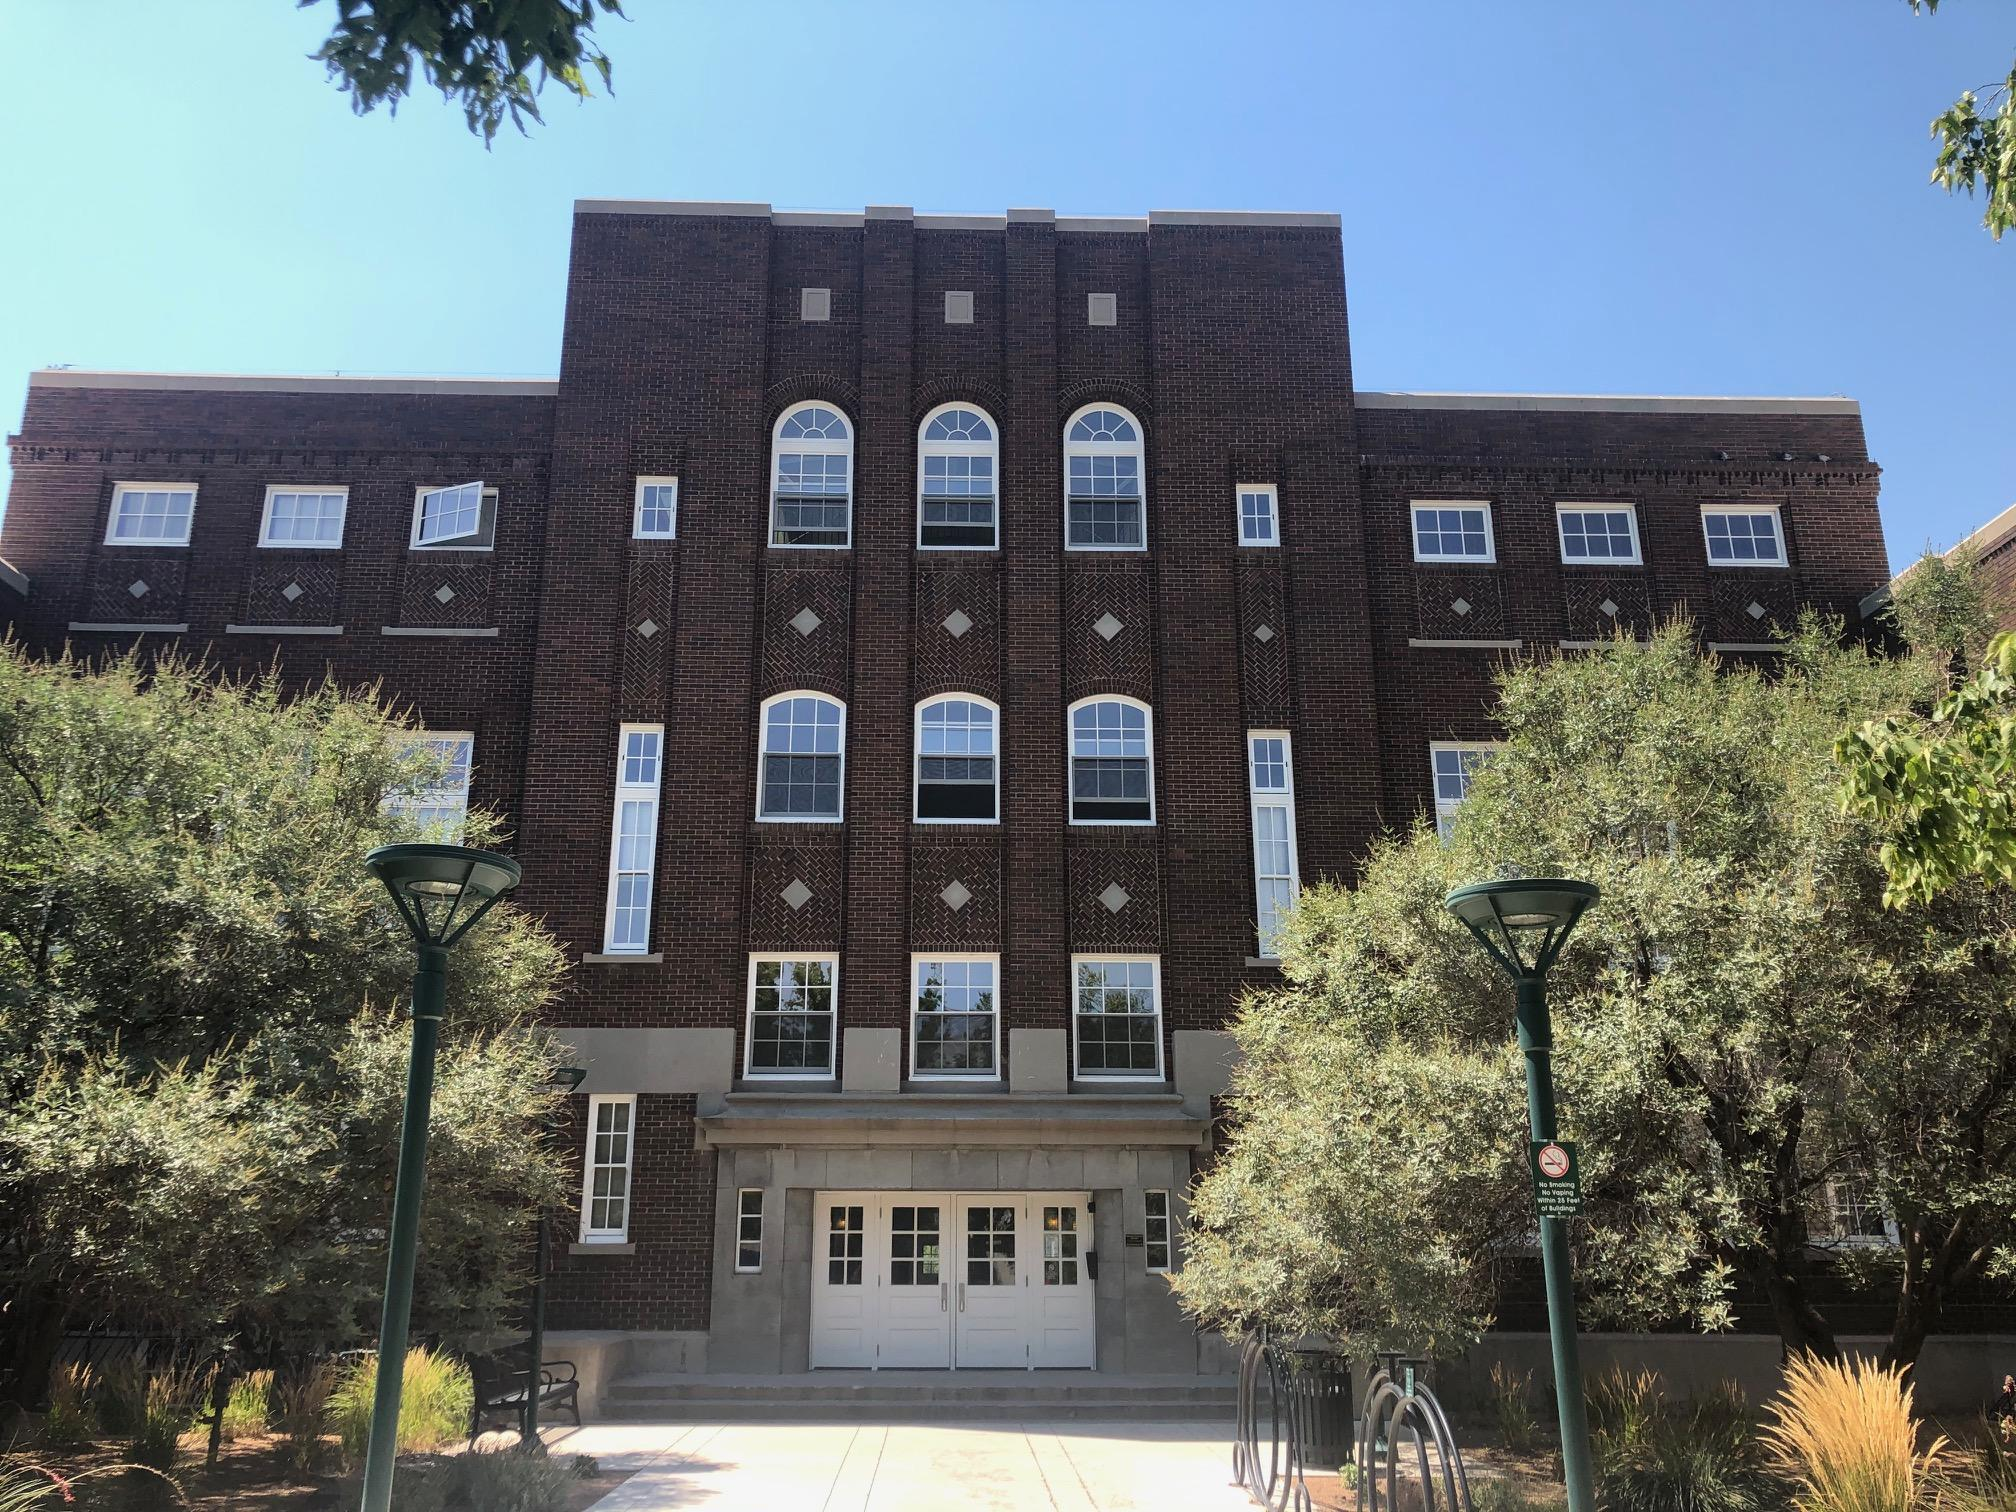 Albuquerque High Gym Lofts top floor unit. Large East facing windows feature abundant light in the mornings and shade in the evenings. Kitchen with island and stainless appliances.  Secure living with fenced court yard, electronic entry, gym, laundry facility and open sitting areas both inside and out.